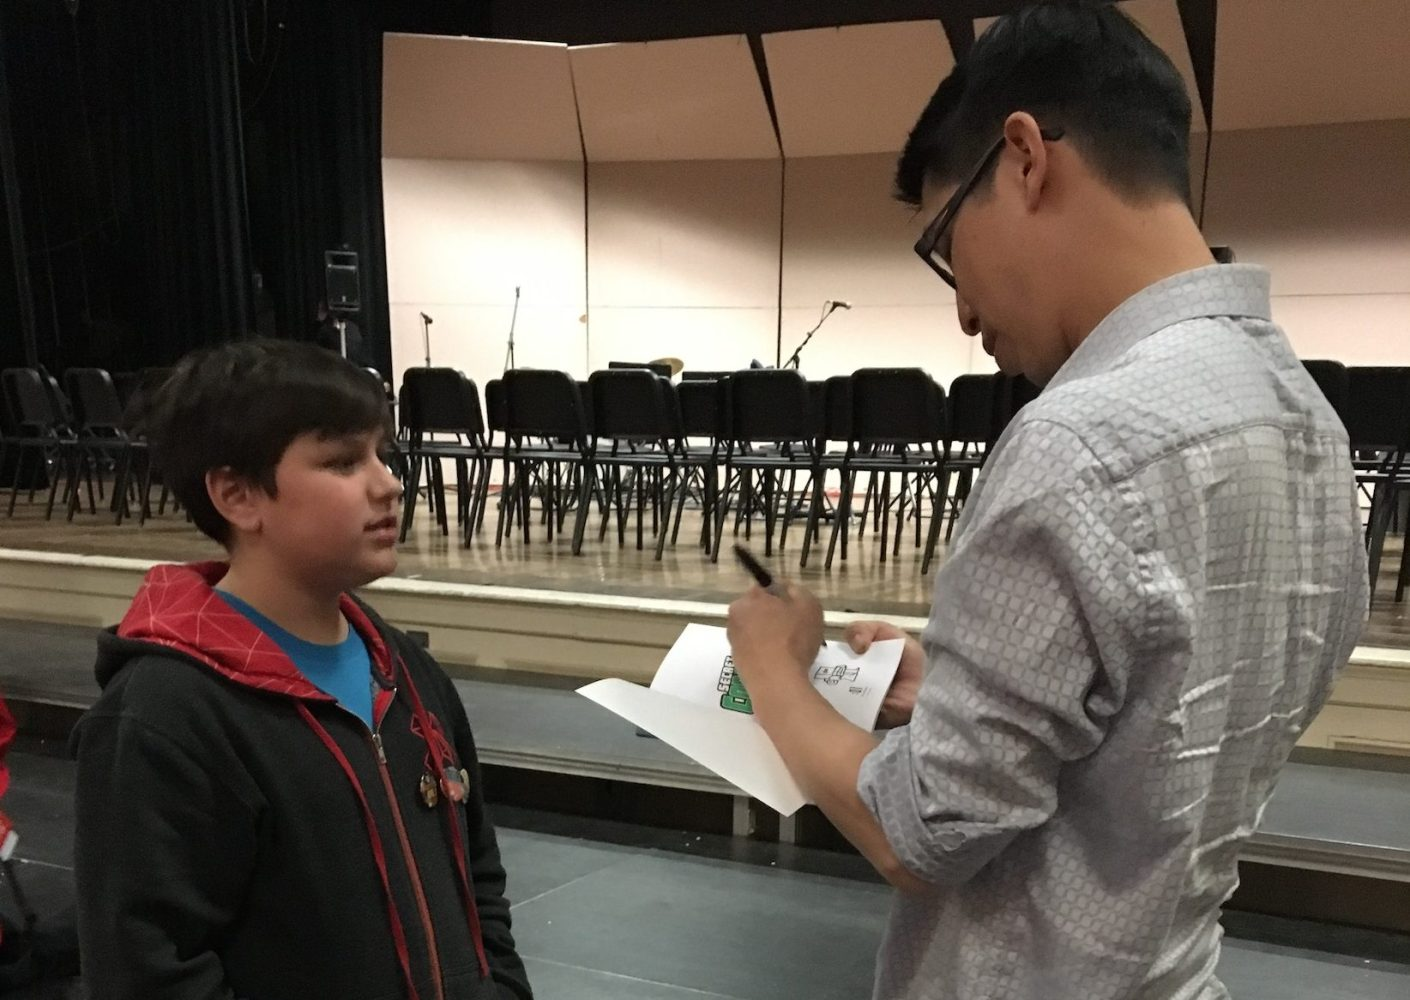 Gene+Yang%2C+author+of+American+Born+Chinese%2C+signs+a+book+for+a+young+student.+Yang+addressed+both+high+school+and+middle+school+students+in+the+auditorium+on+April+6.+